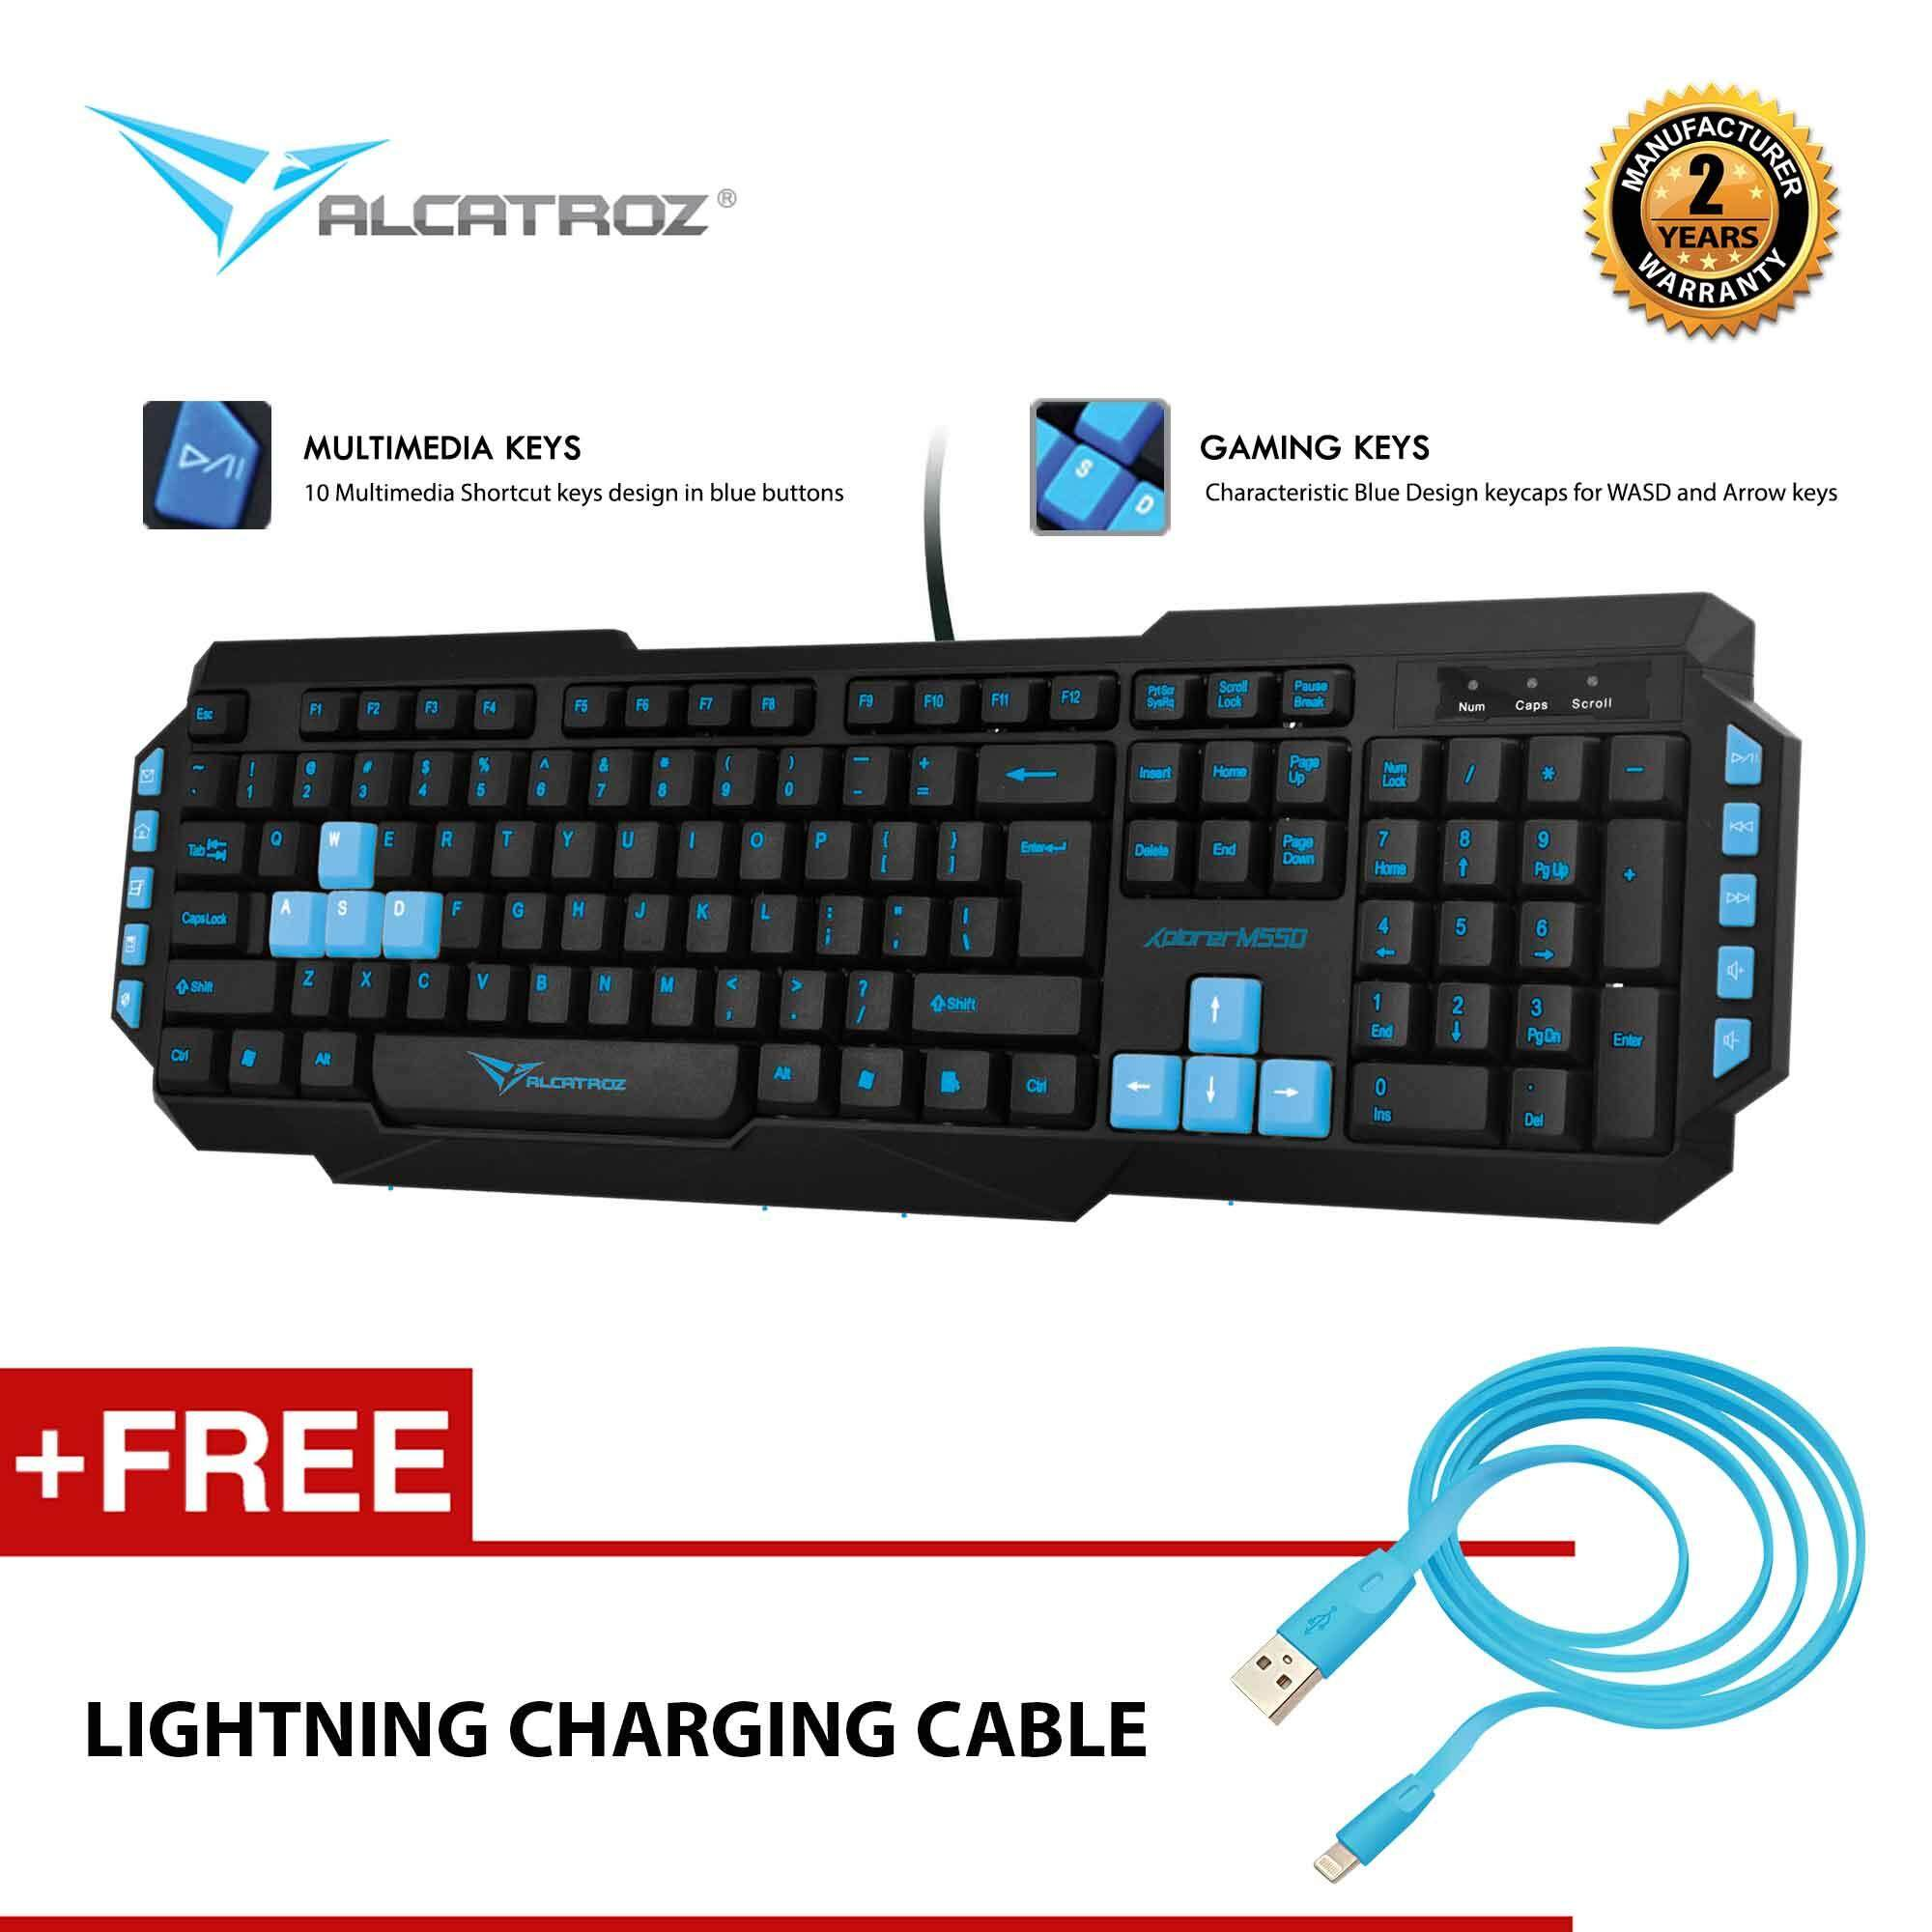 Alcatroz Xplorer M550 Multimedia USB Keyboard Free Lightning Smartphones Charging Cable Malaysia